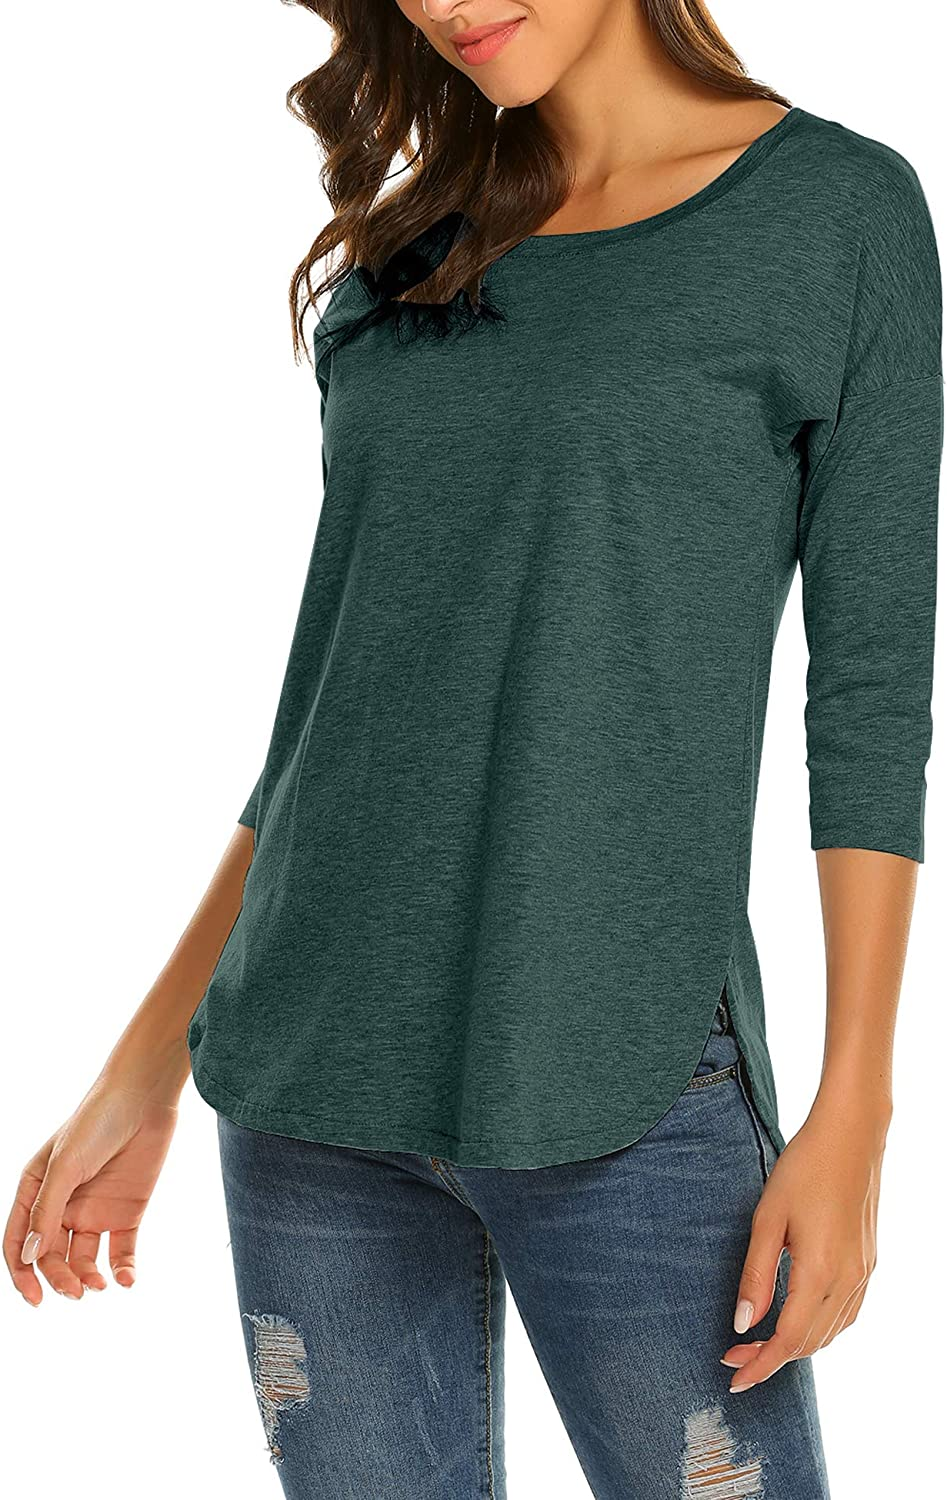 She Women's Casual 3/4 Sleeve Loose Tunic Tops Scoop Neck T-Shirt